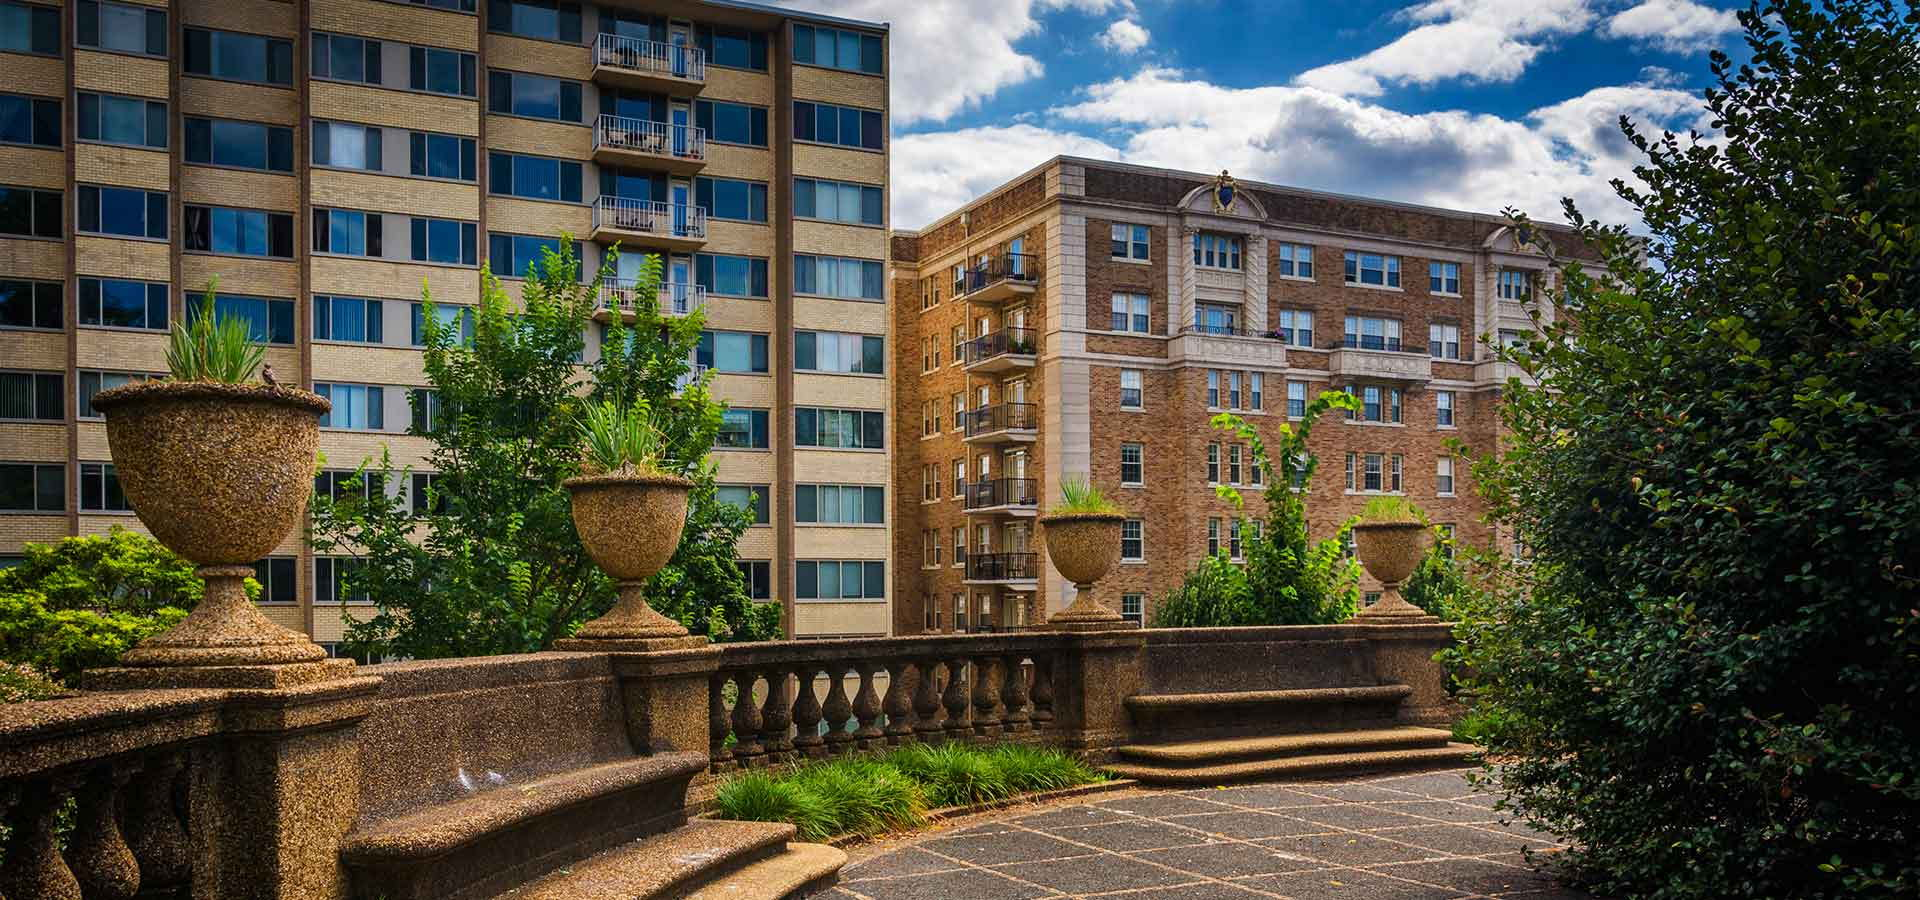 676 Apartments for Rent in Washington, DC | ApartmentRatings©